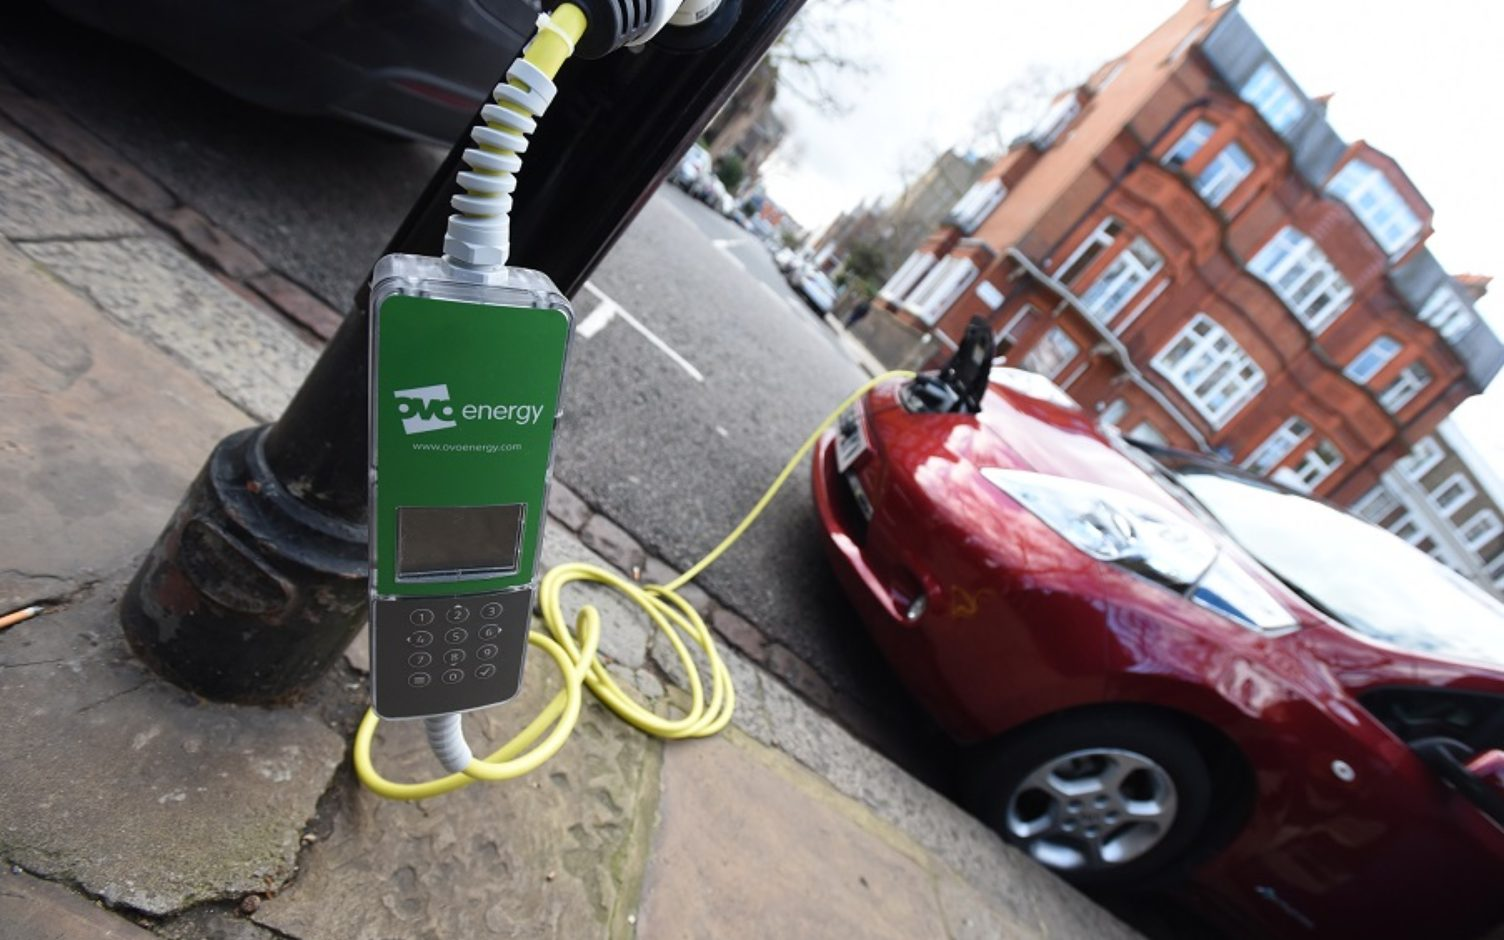 Implementing central-London's biggest lamp column charging network